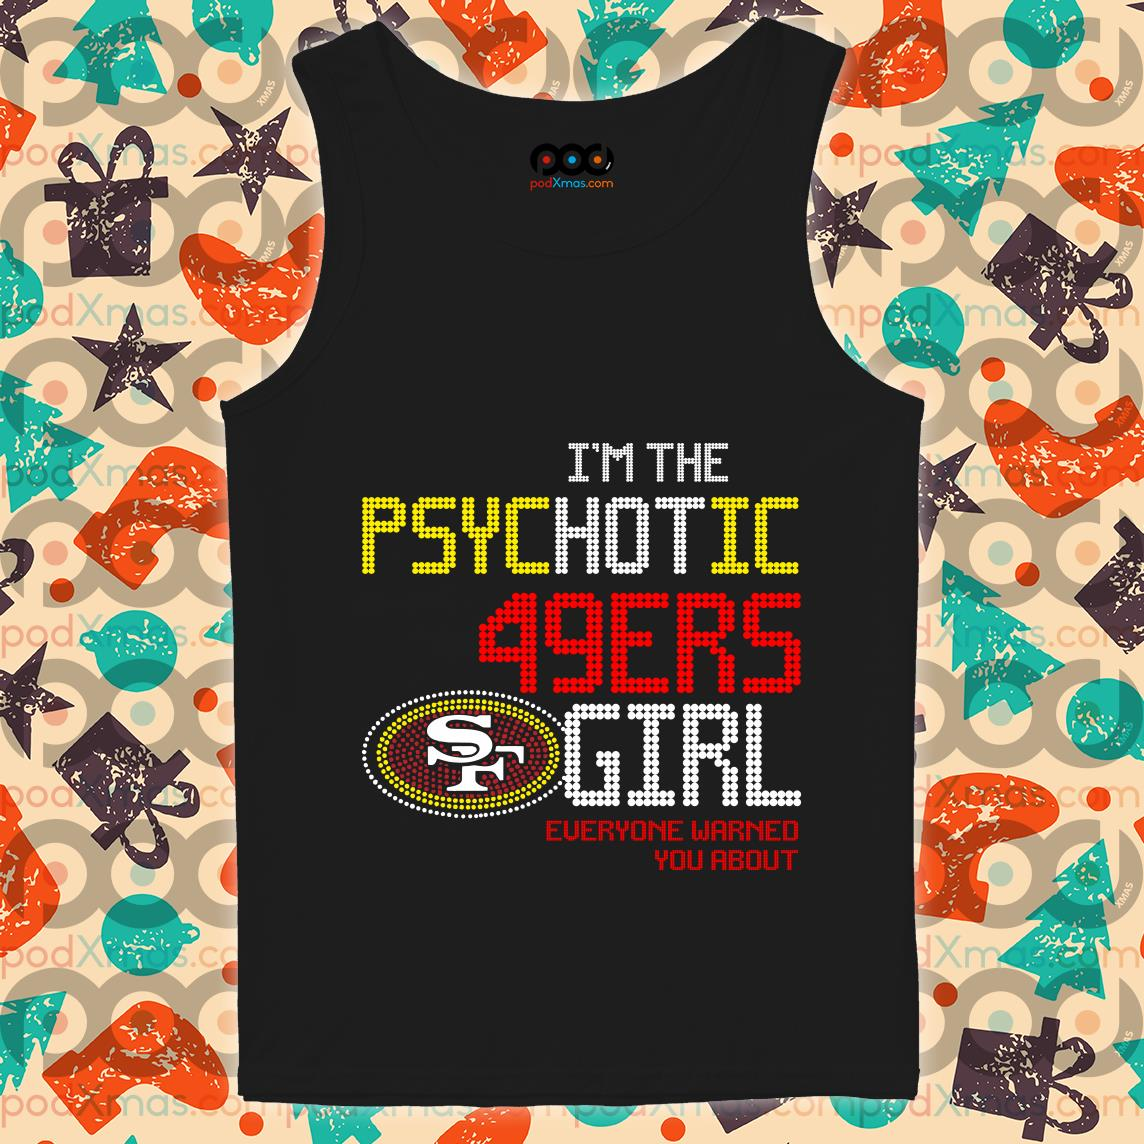 I'm the psychotic 49ers Girl everyone warned you about tank top